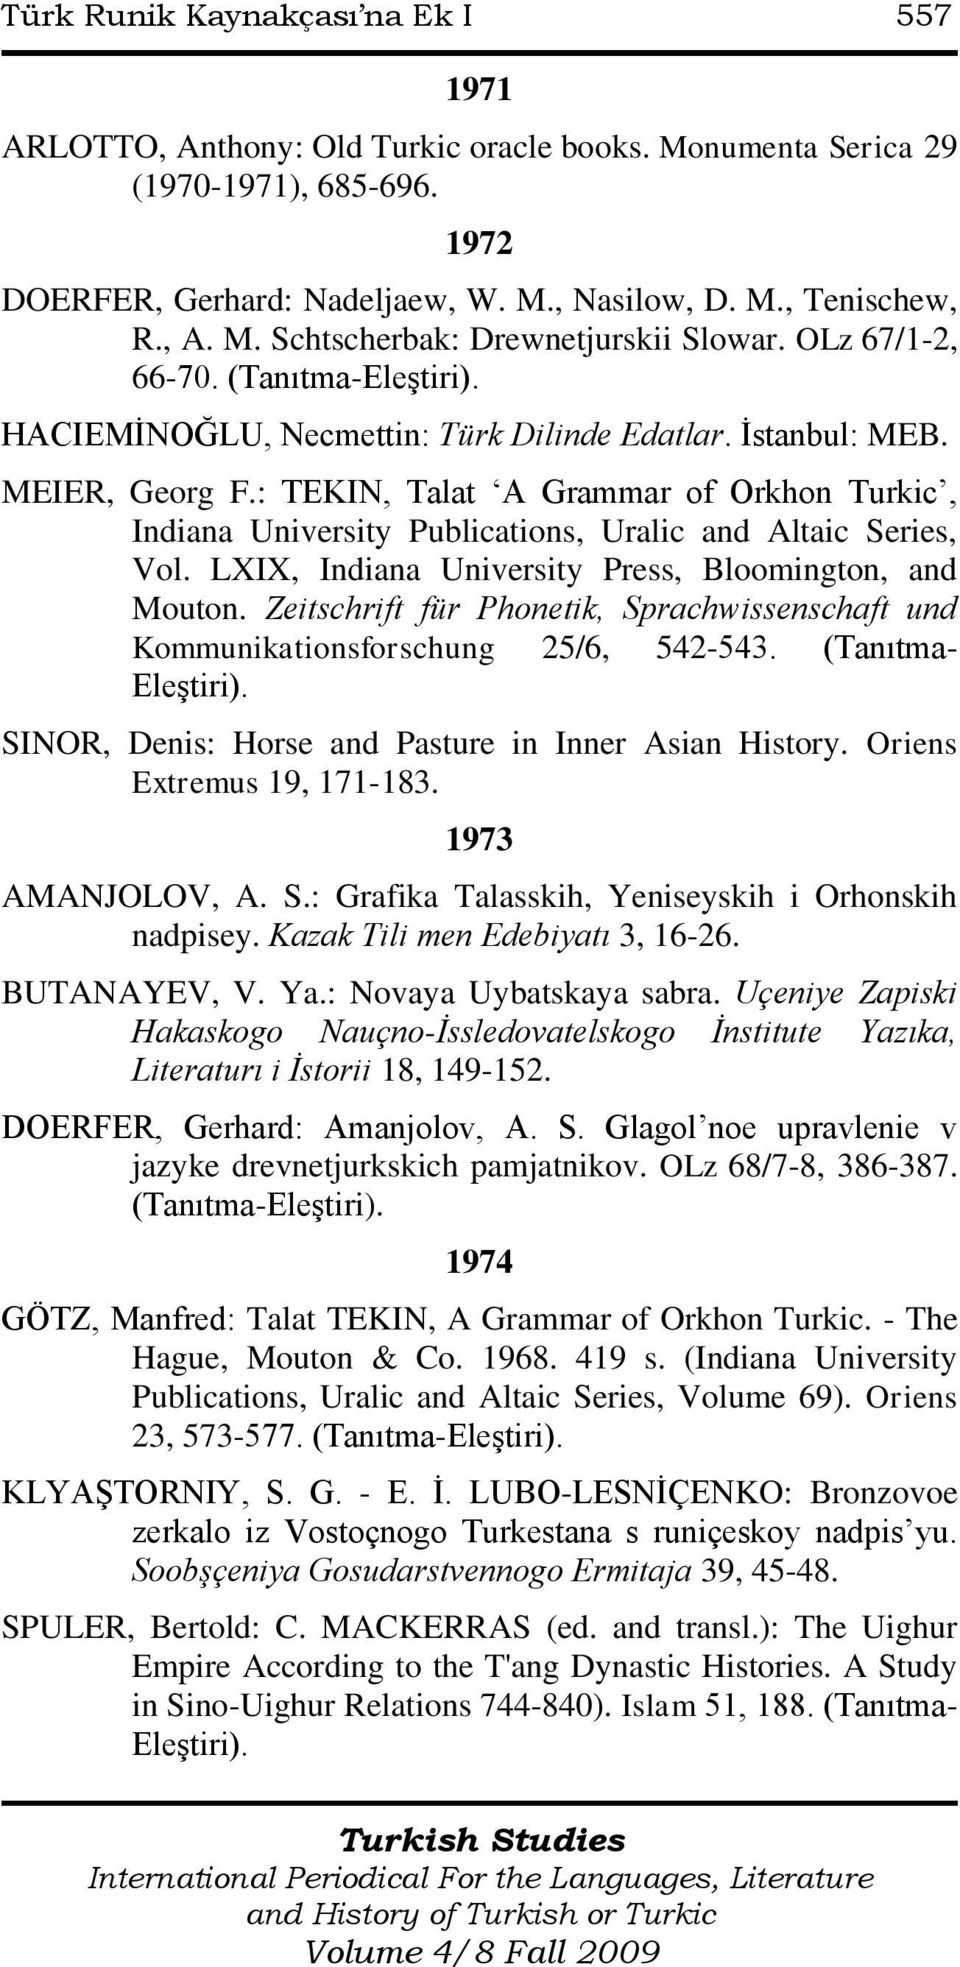 : TEKIN, Talat A Grammar of Orkhon Turkic, Indiana University Publications, Uralic and Altaic Series, Vol. LXIX, Indiana University Press, Bloomington, and Mouton.